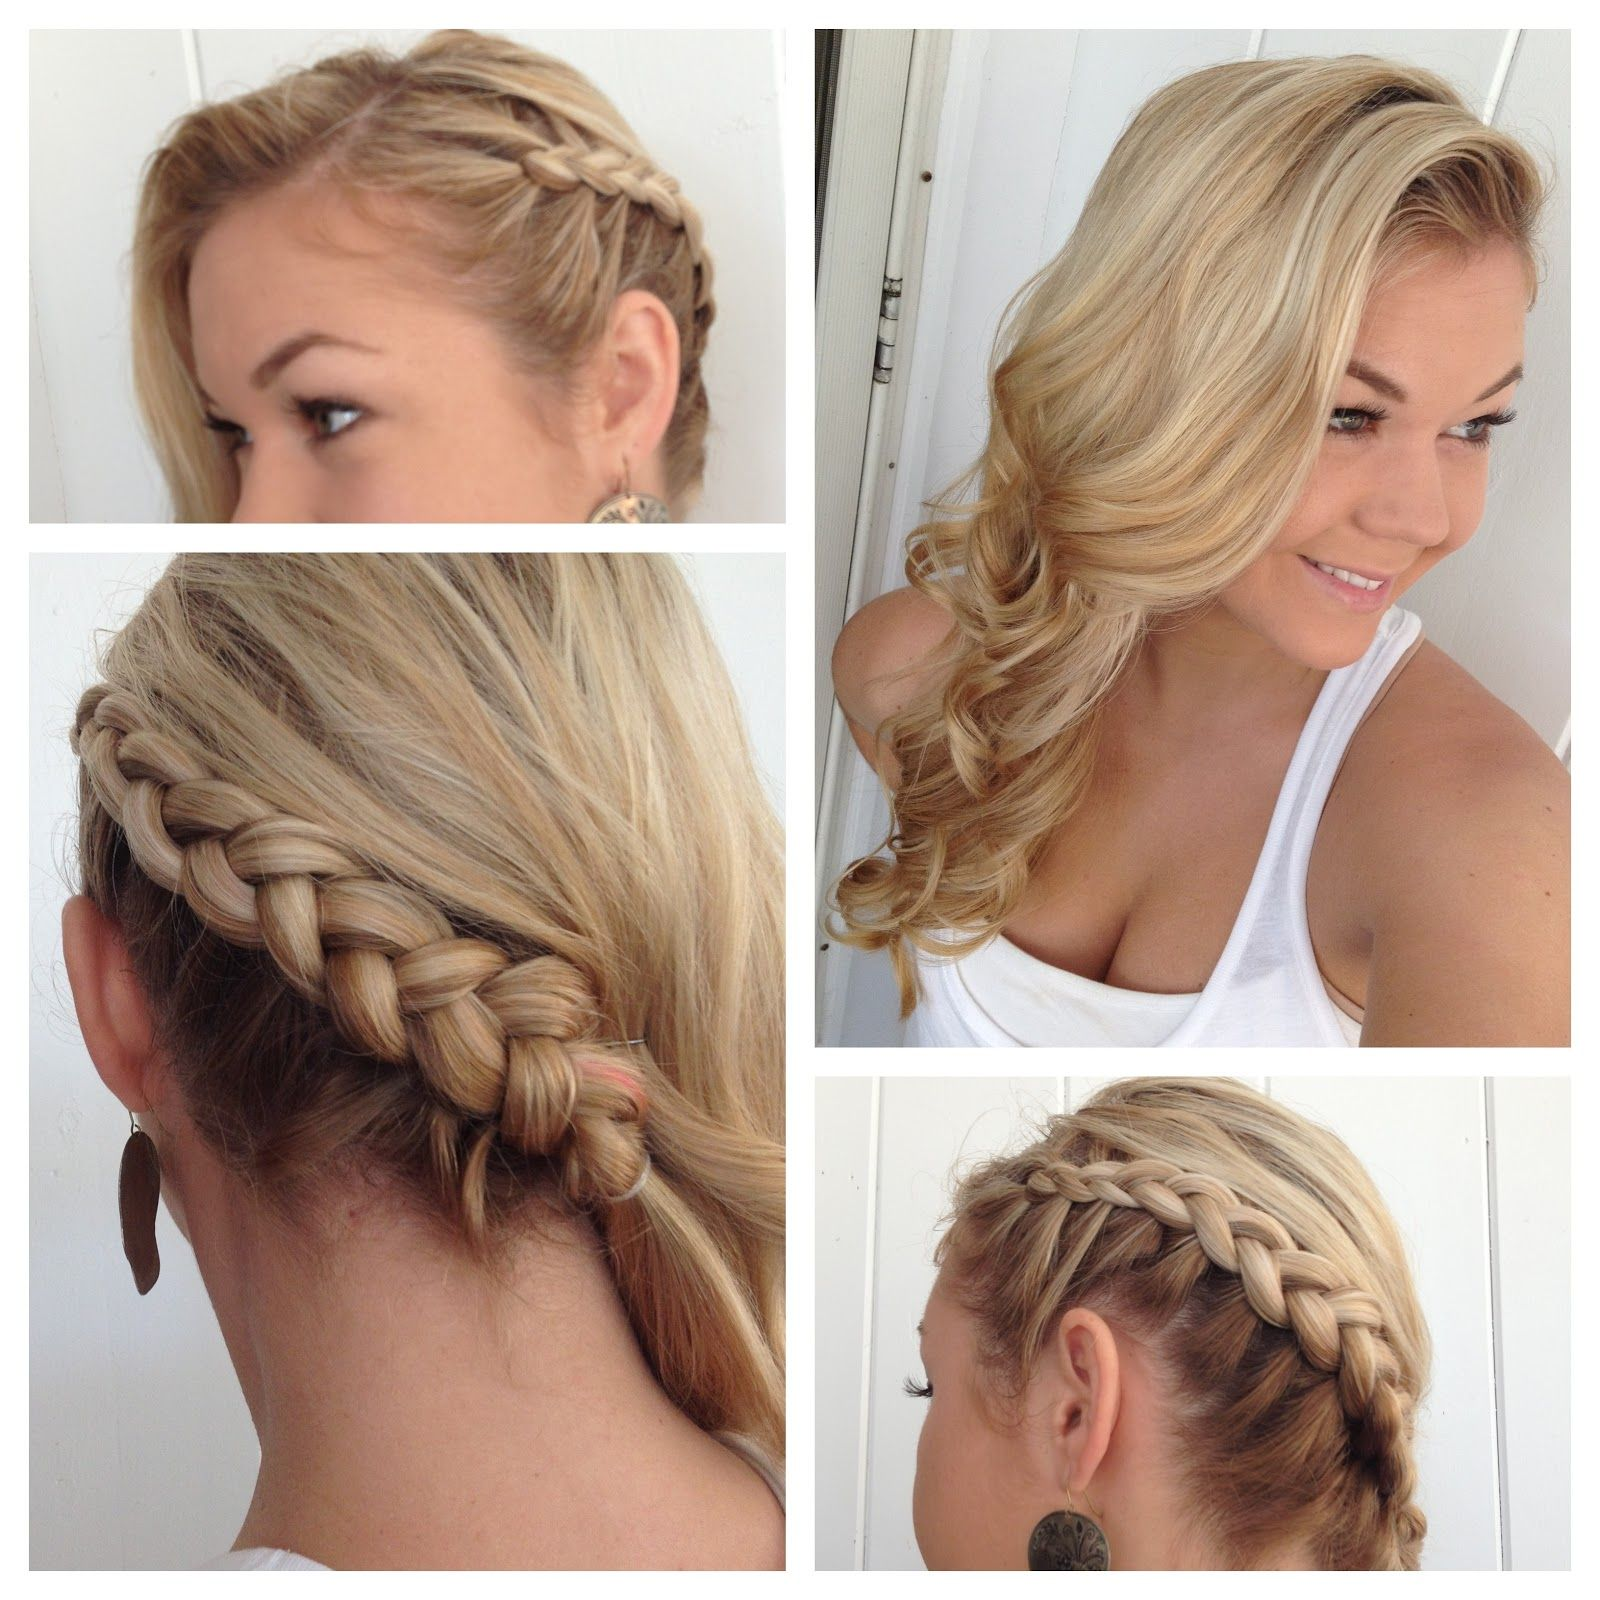 Side Braid Hairstyles For Weddings: Fishtail Side Braid Wedding Hairstyle